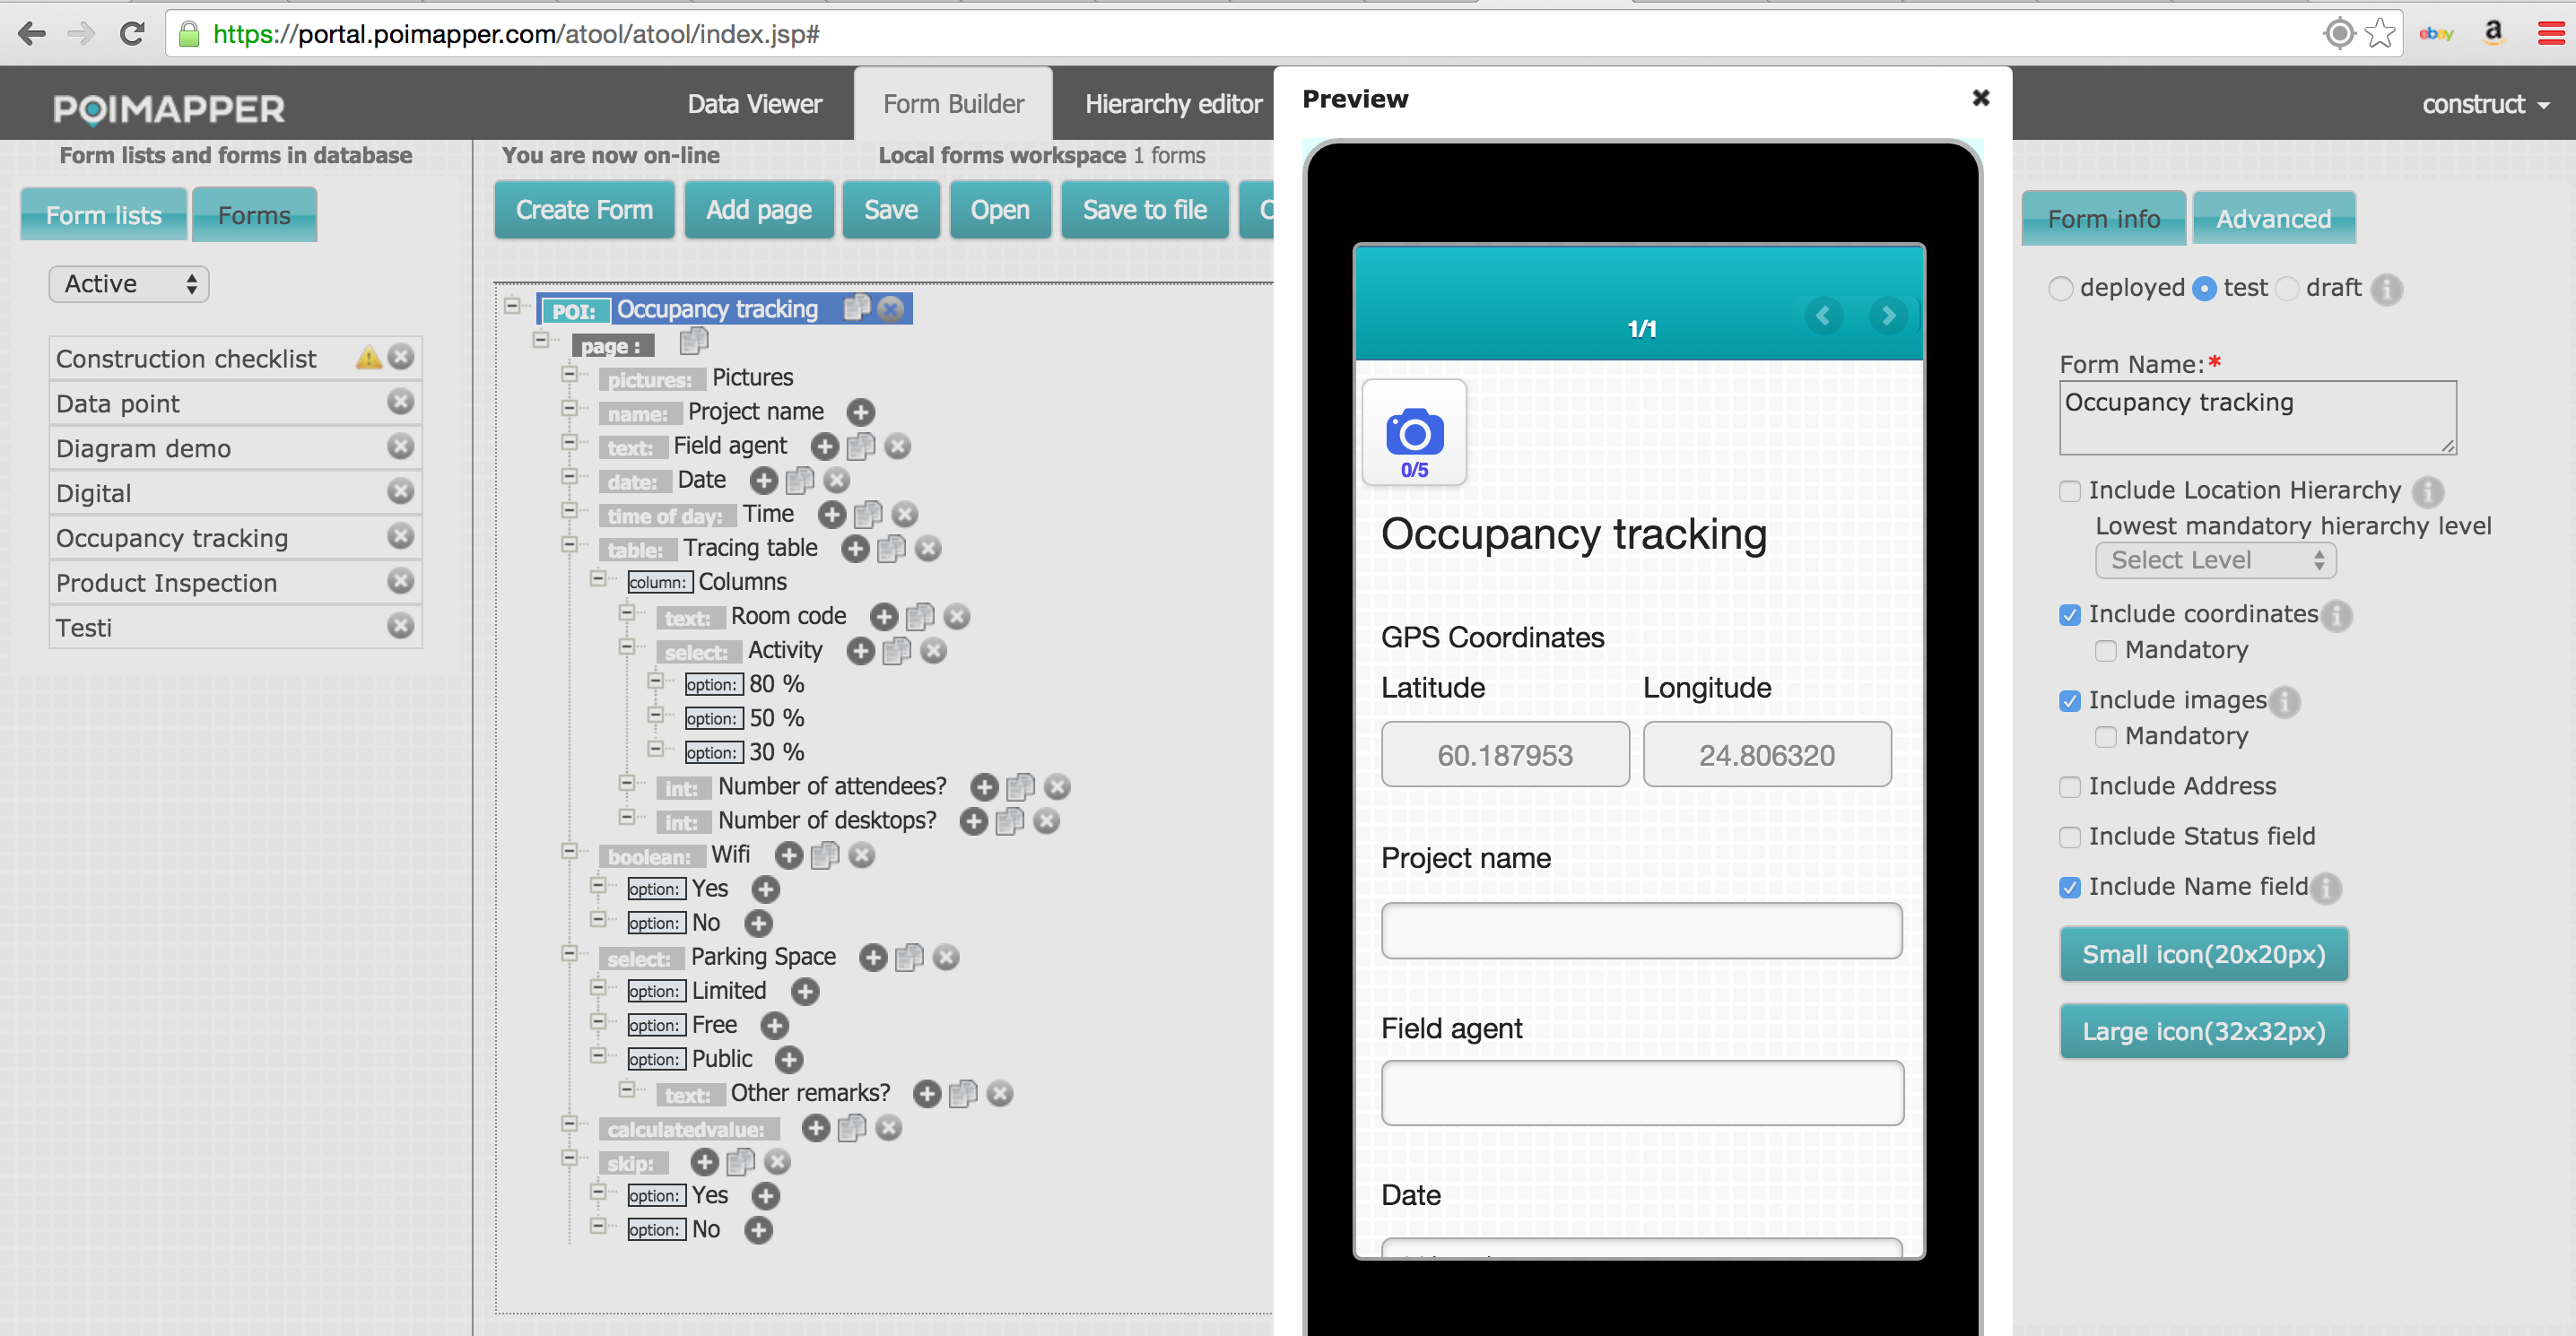 Easy to use mobile form builder with a preview feature